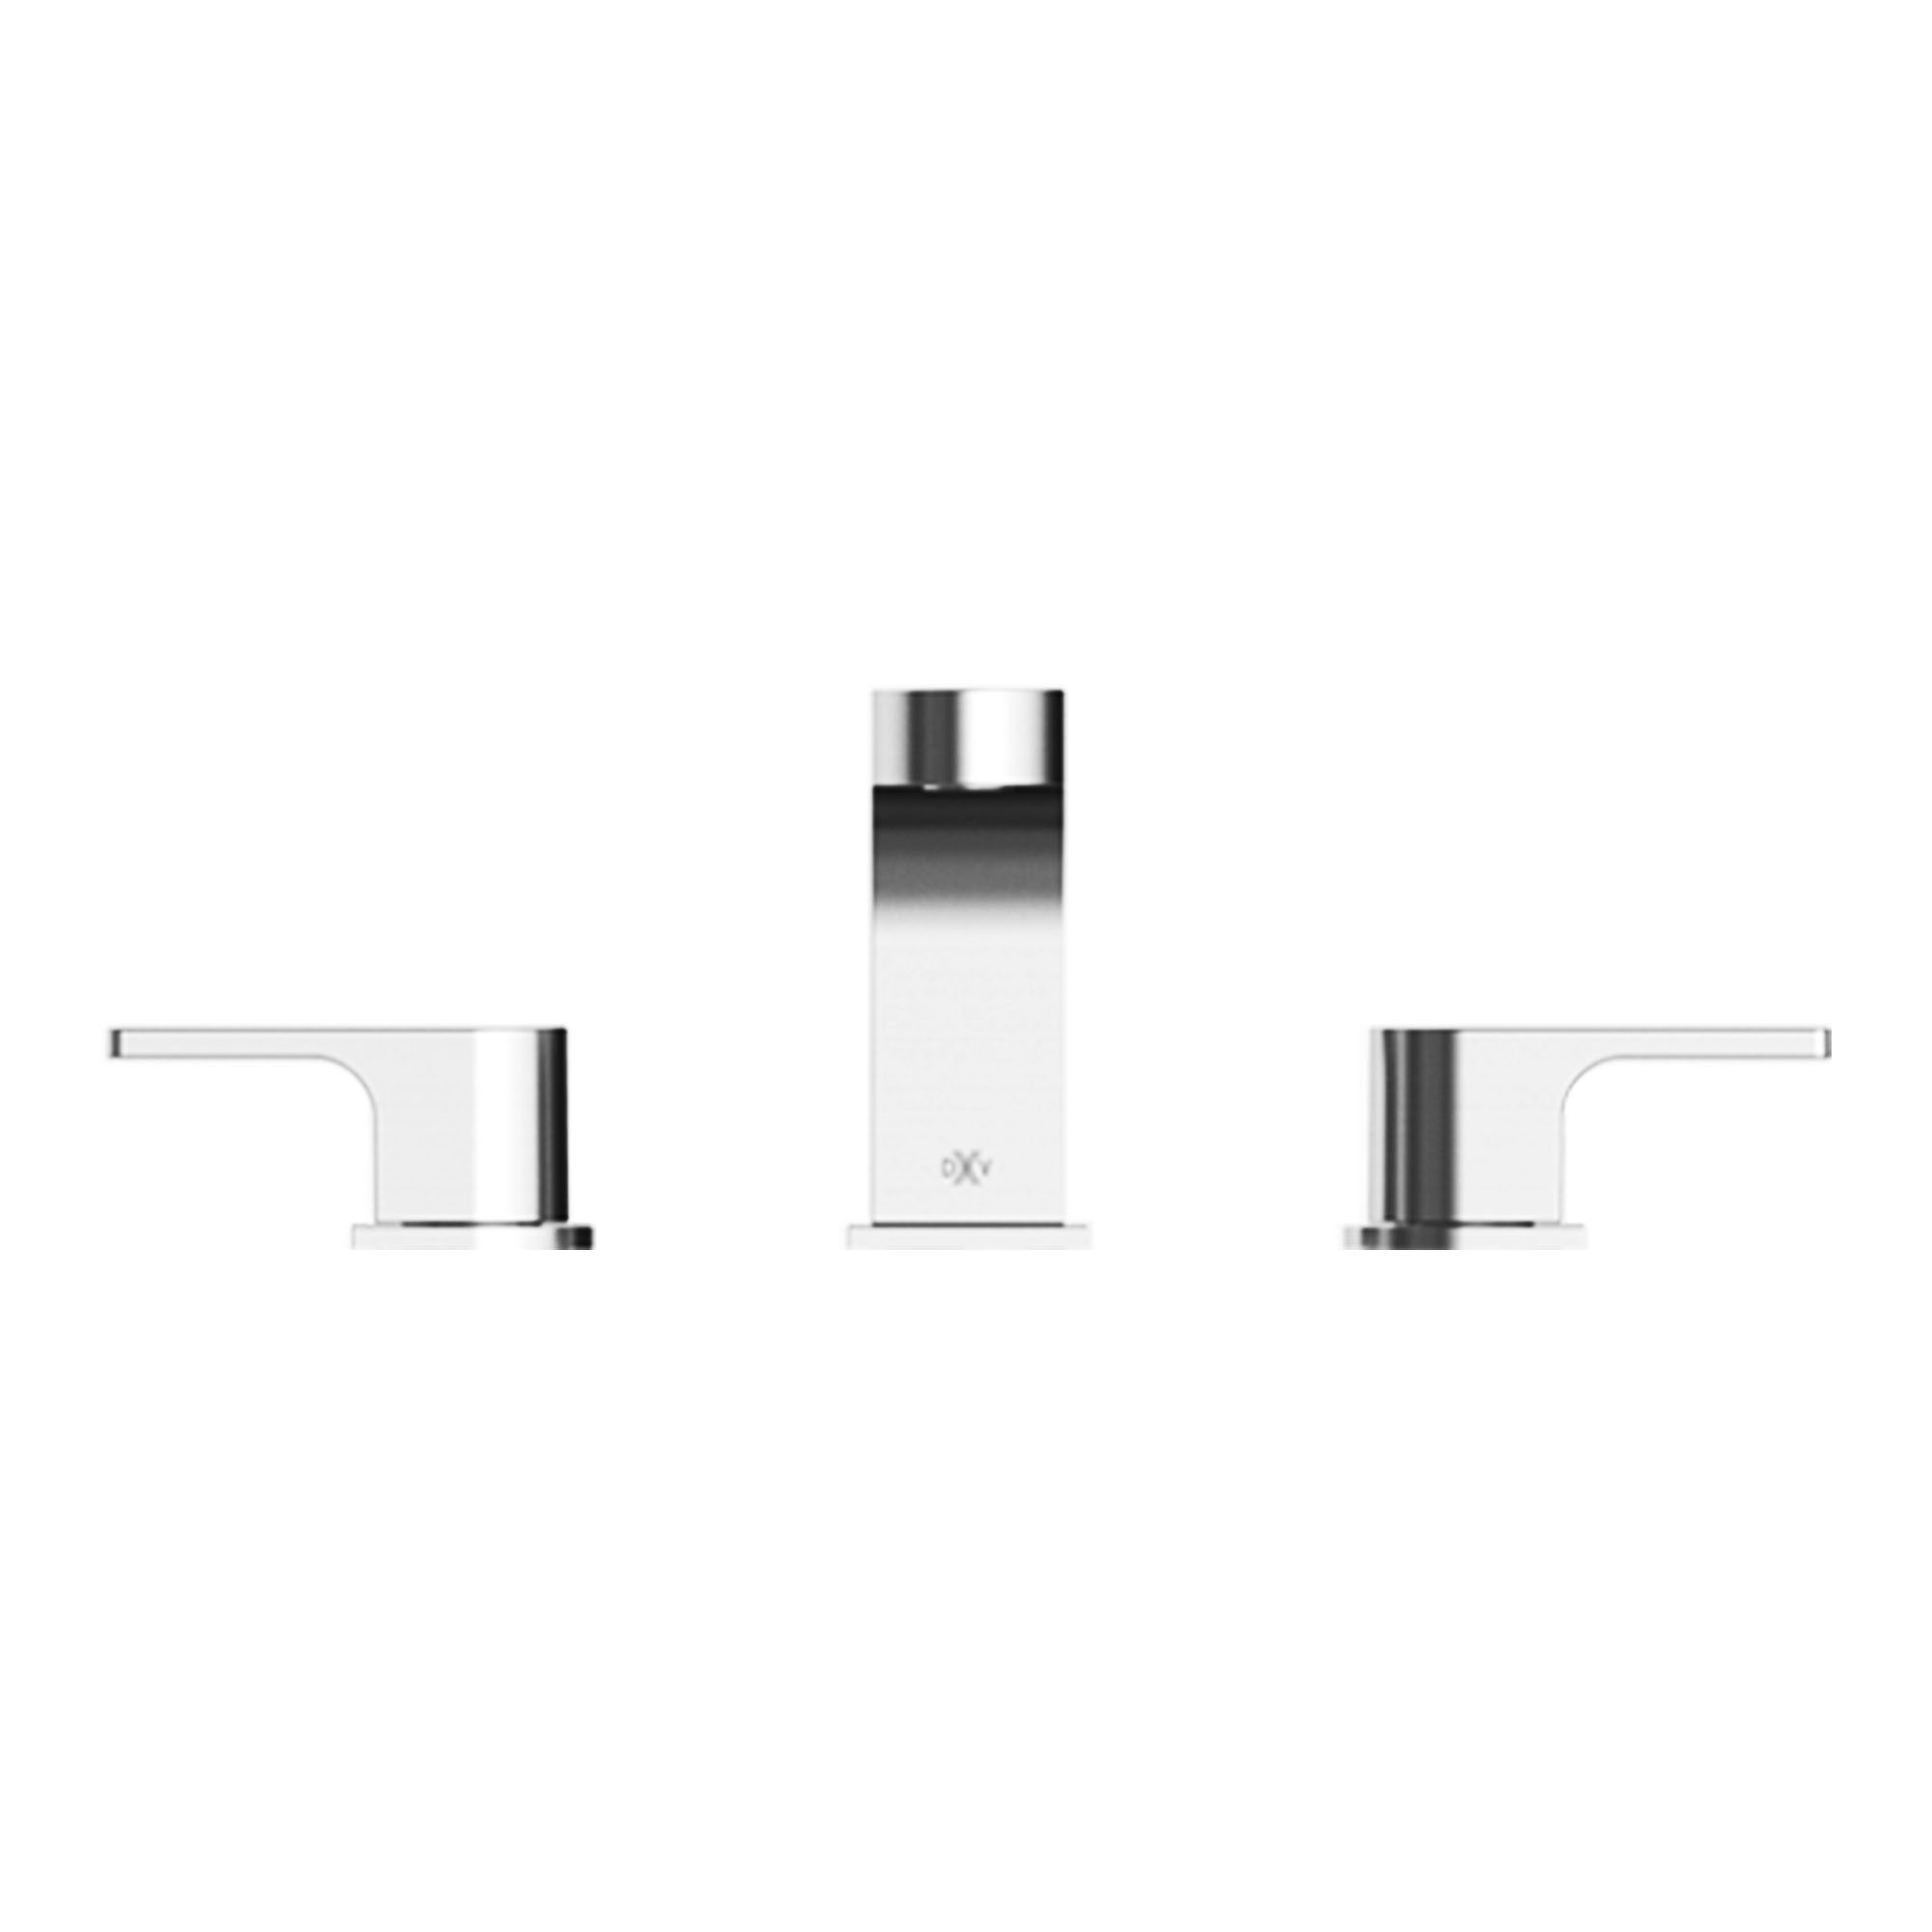 widespread faucet drain and nickel bathroom included comfortzone technologies with focus quick assembly ecoright hansgrohe brushed clean gpm